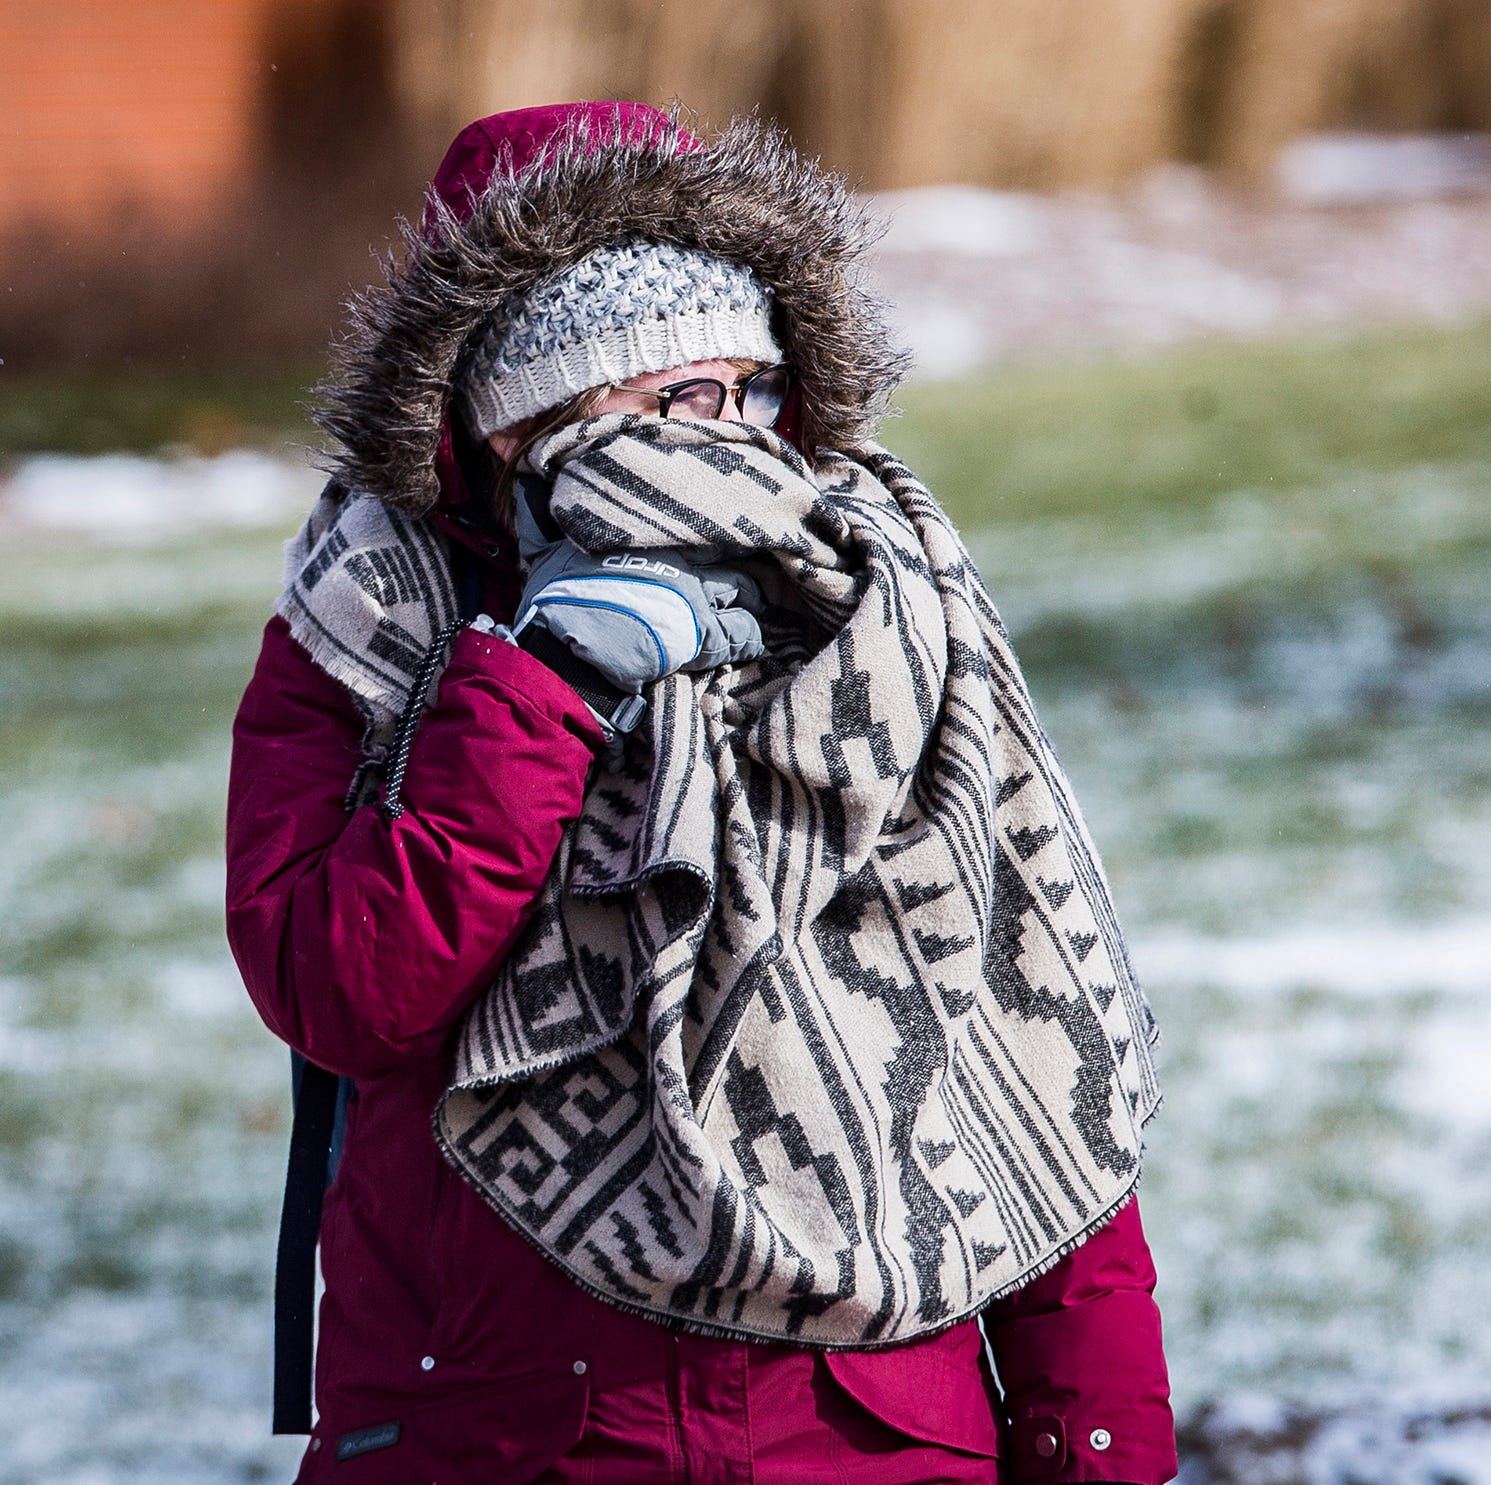 Indiana is colder than Antarctica today. Here are 5 unlikely places that are warmer.